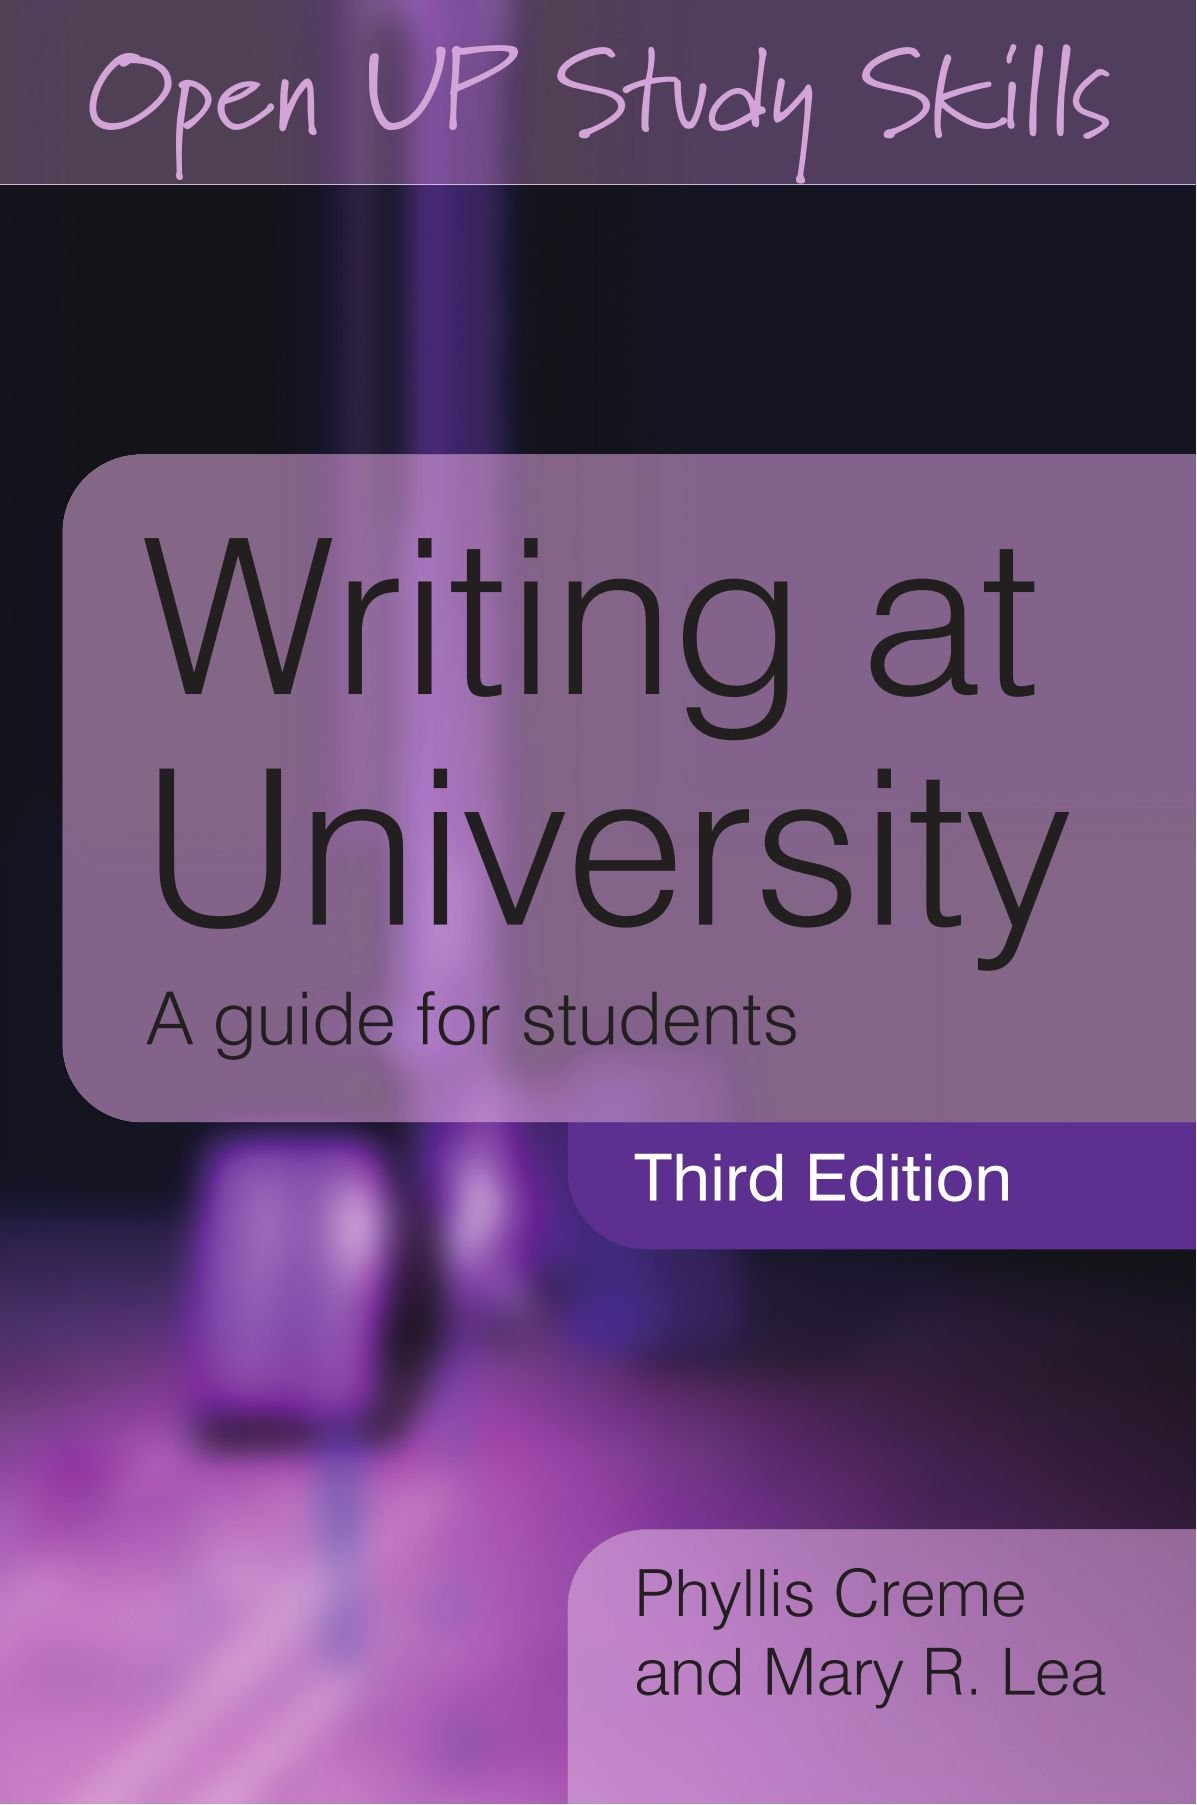 writing at university a guide for students amazon co uk phyllis writing at university a guide for students amazon co uk phyllis creme 9780335221165 books